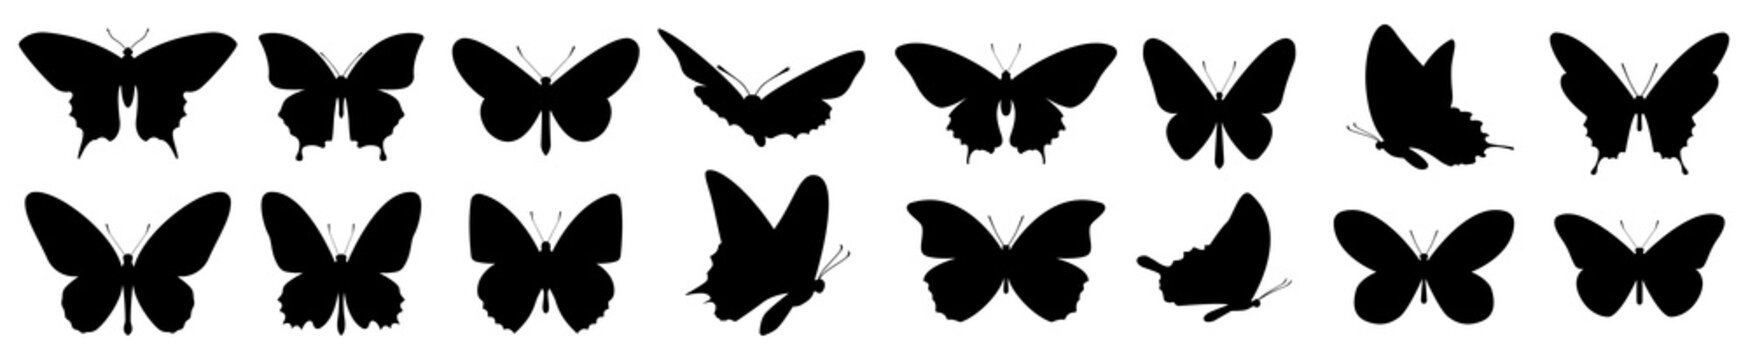 Butterflies silhouette set. Vector illustration